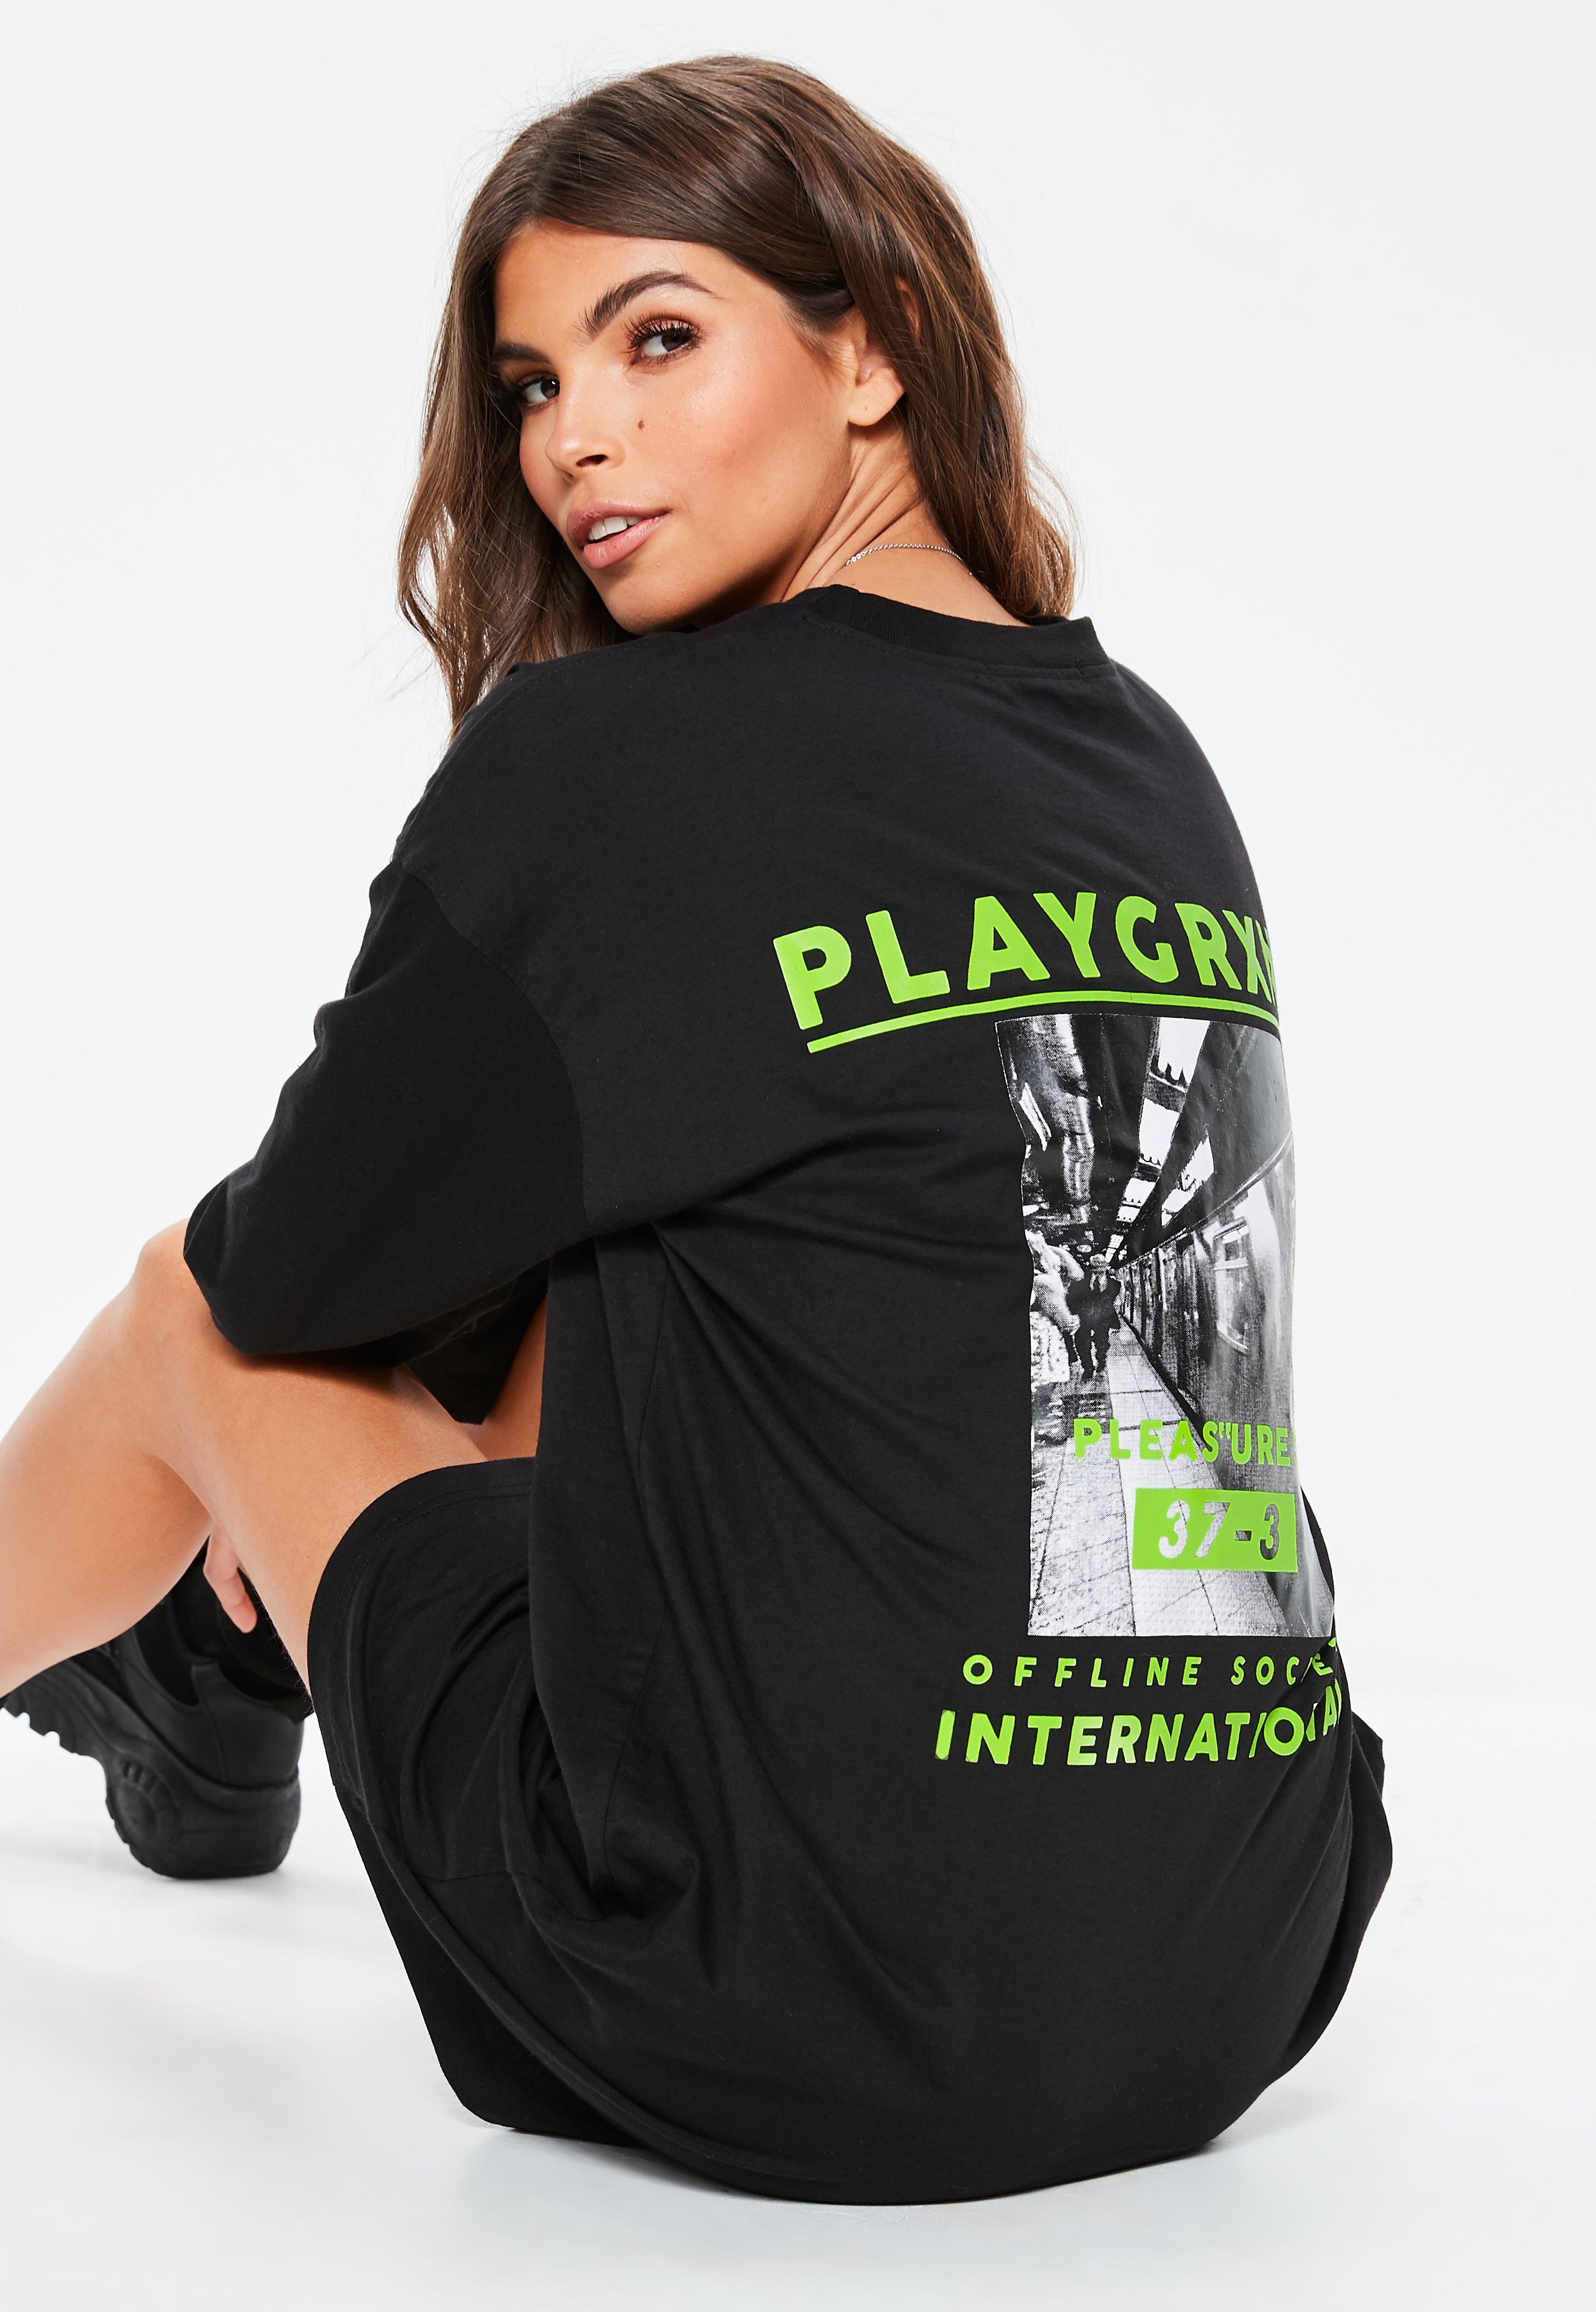 ede921ce2d0f Black Playgrxnd Long Oversized T Shirt Dress